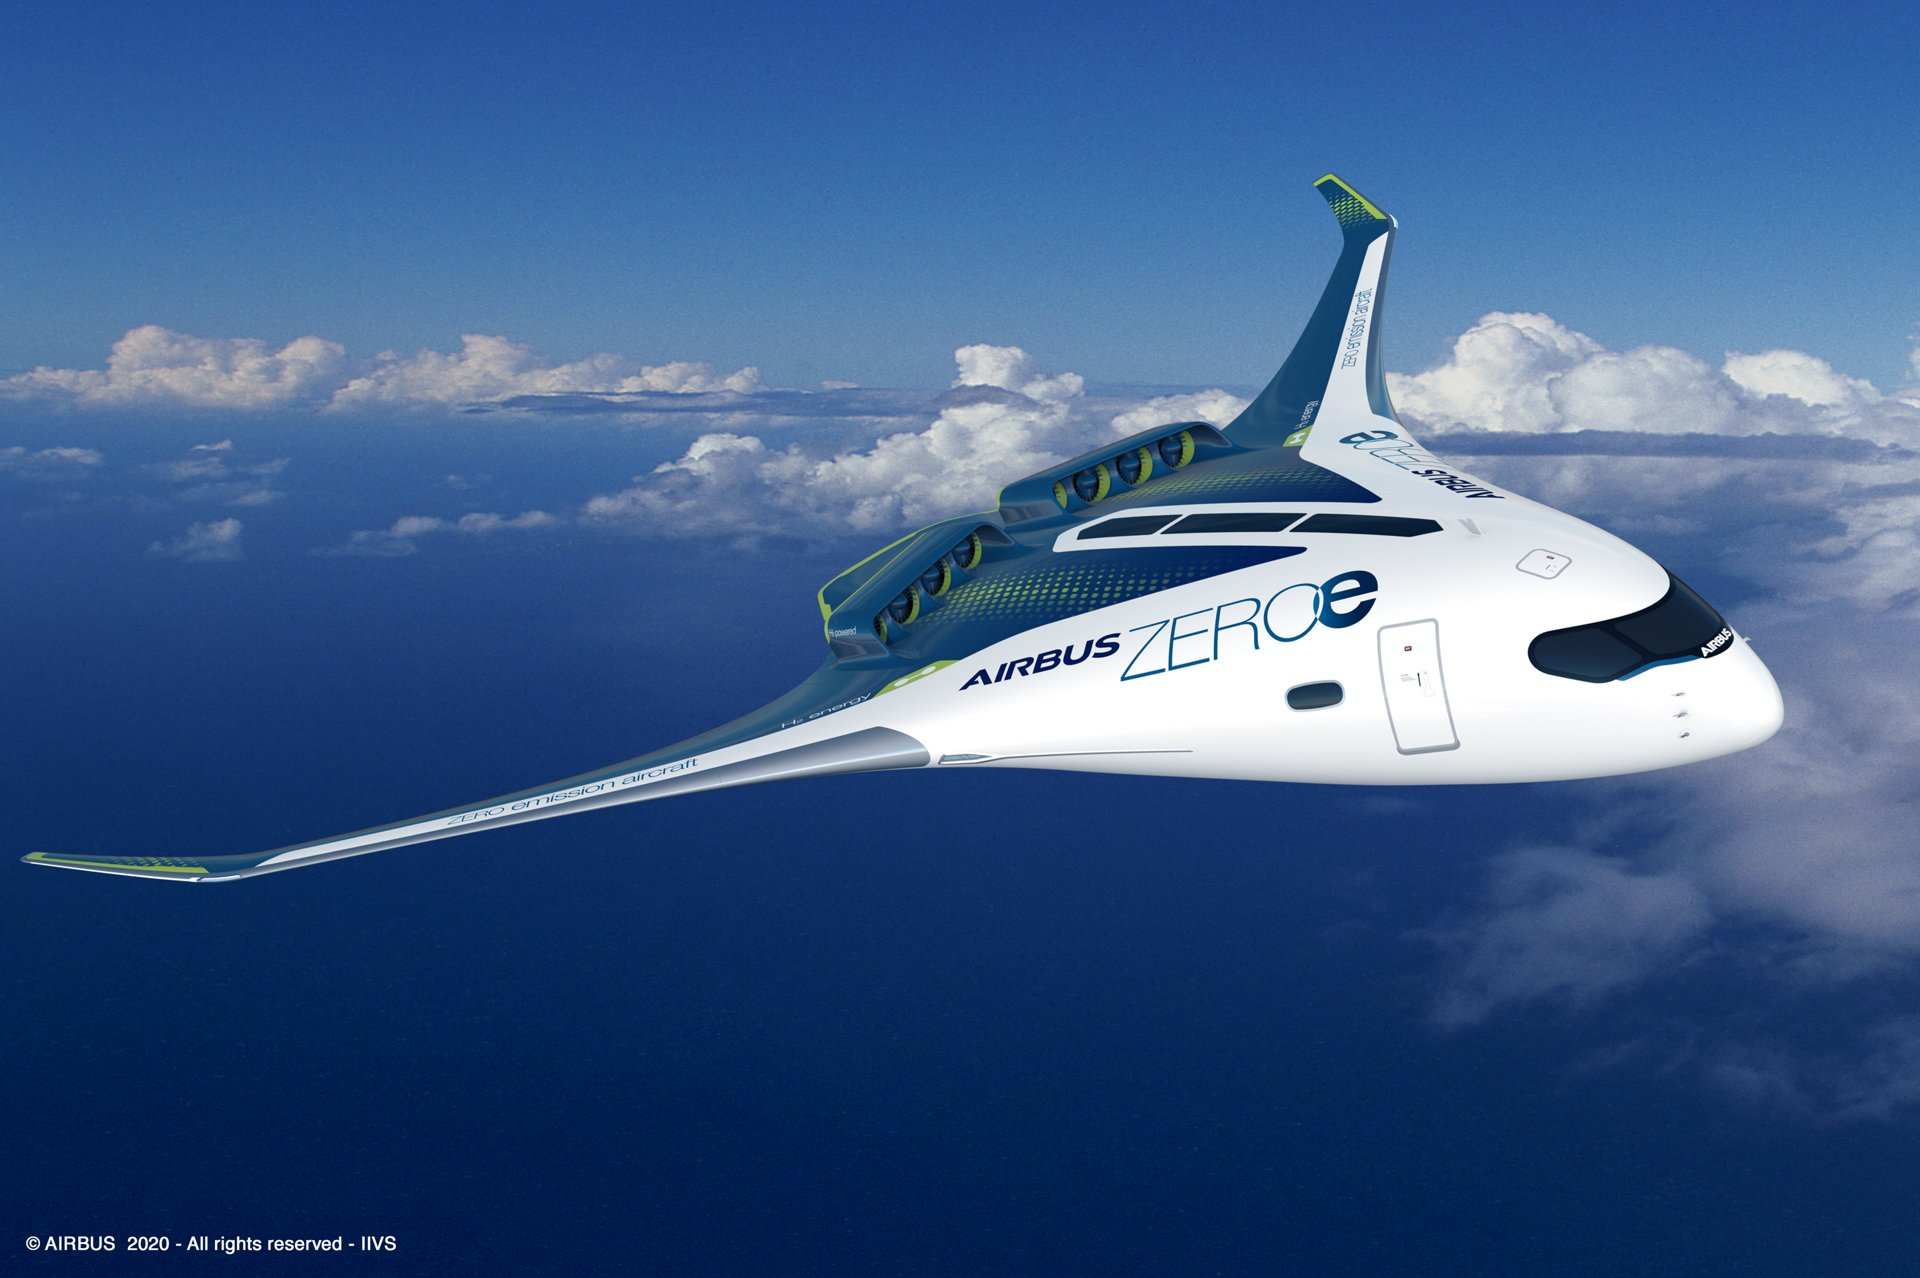 airbuszeroe-blended-wing-body-concept.jpg (251.73 Kb)